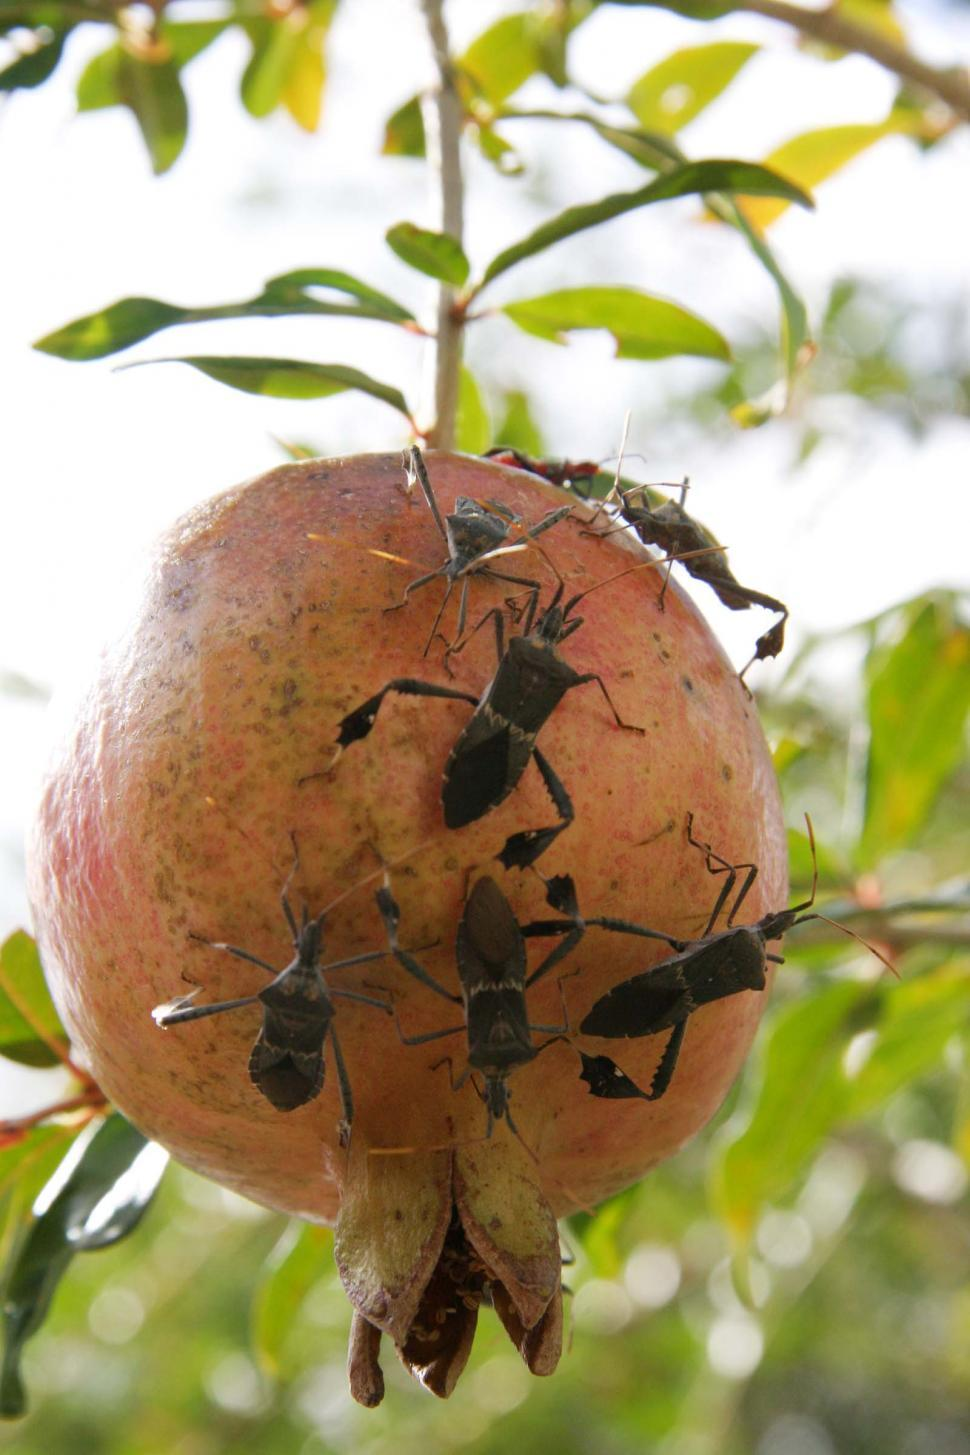 Download Free Stock Photo of Many bugs on a pomegranate